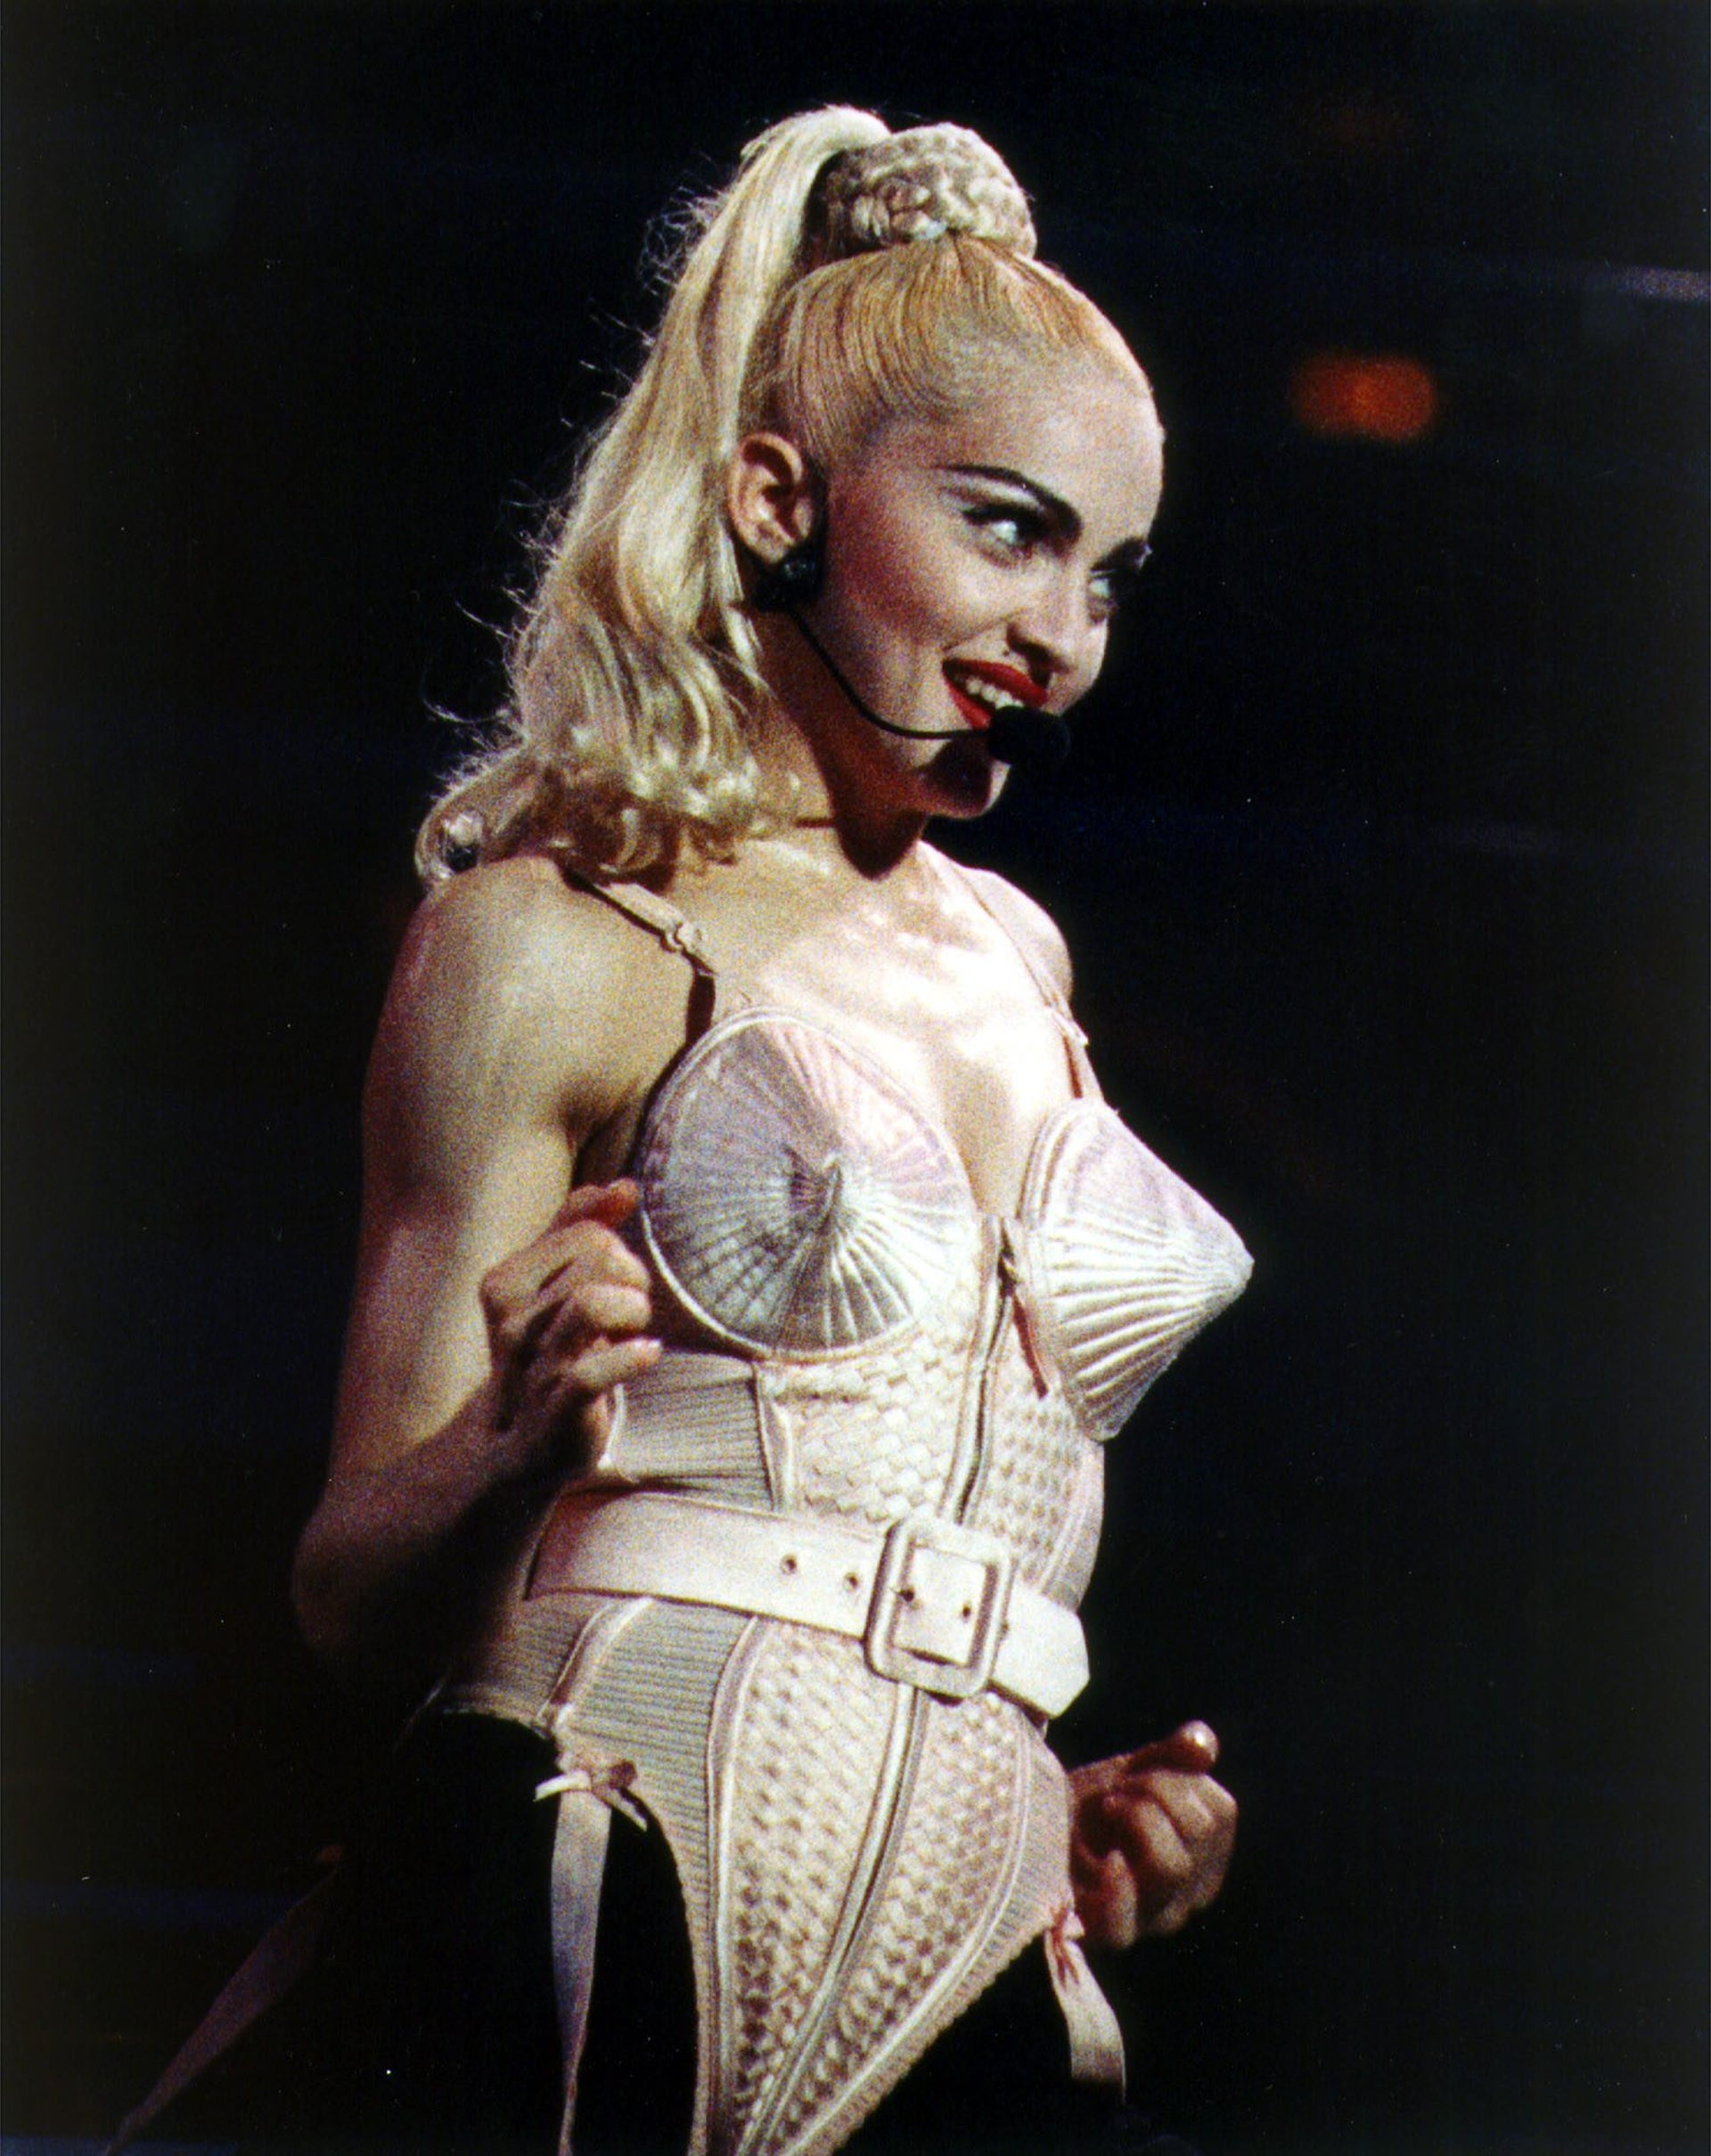 Madonna wearing the cone-shaped corset designed by Jean Paul Gaultier, in 1990.